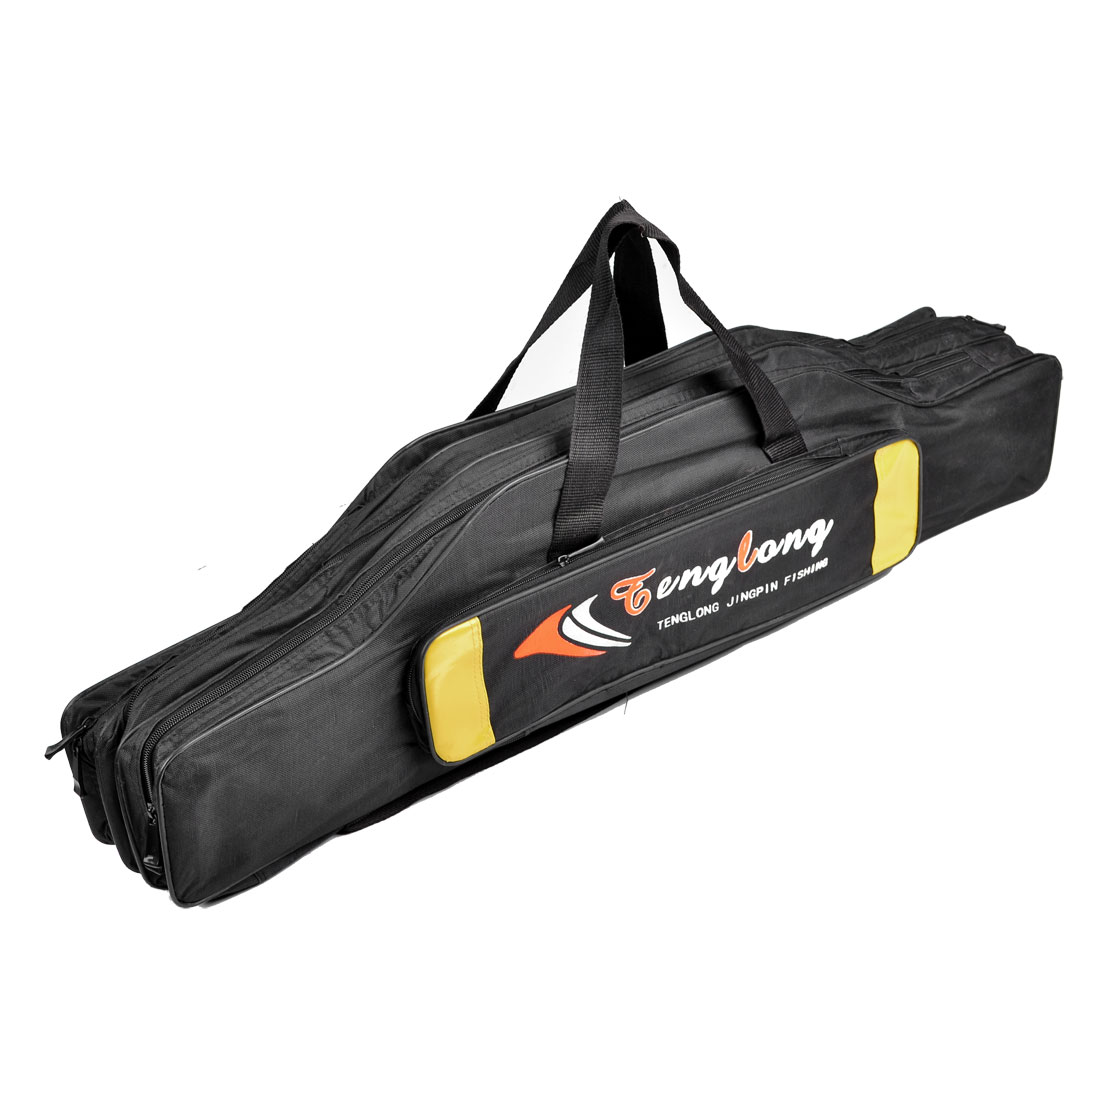 90cm Length Zippered 5 Compartment Nylon Angling Fishing Rod Pole Bag Black